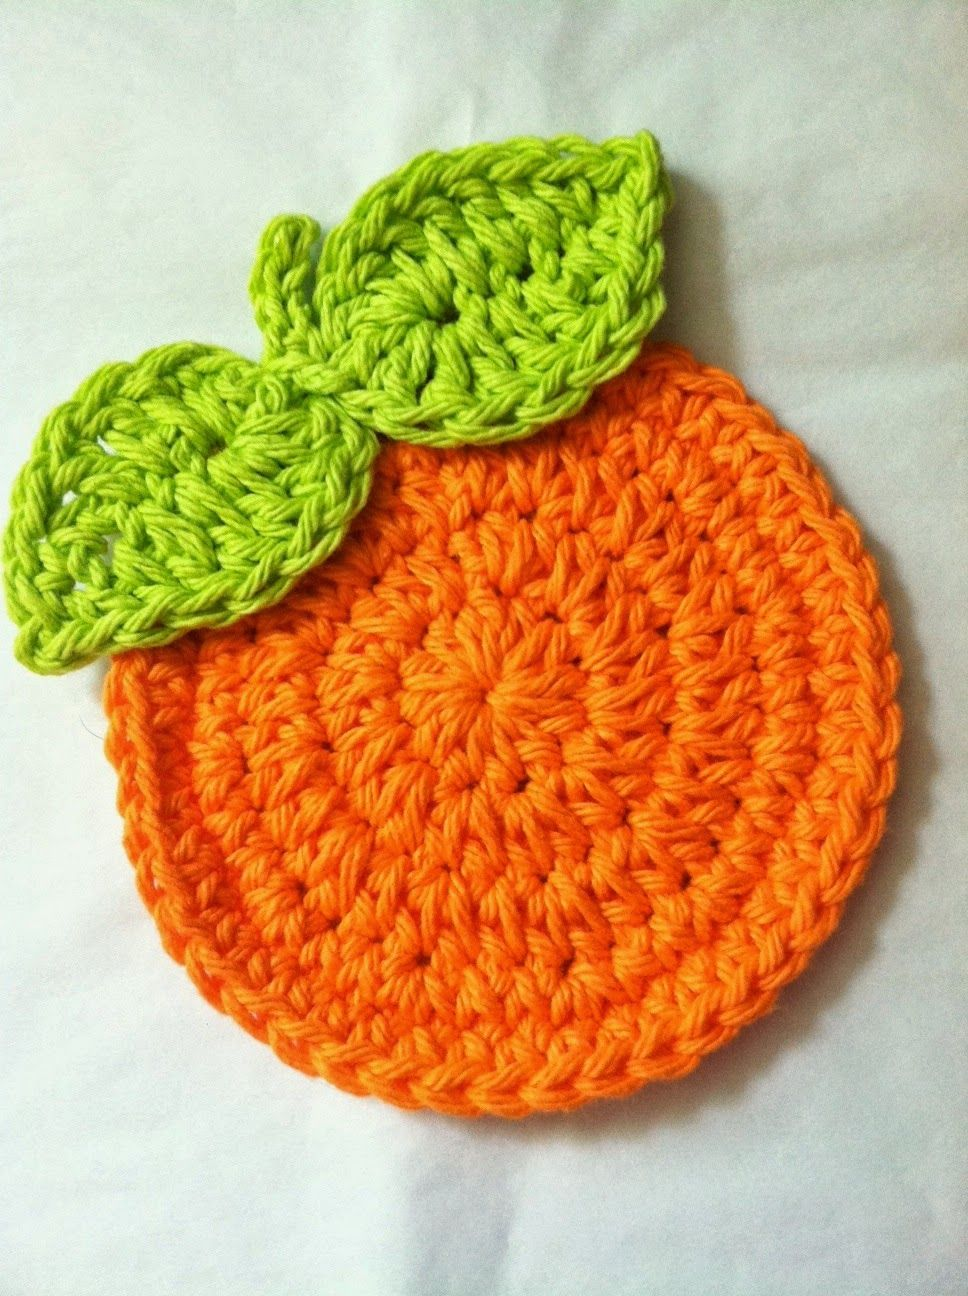 Here is the free pattern for the oranges crochet coaster set it here is the free pattern for the oranges crochet coaster set it is bankloansurffo Images